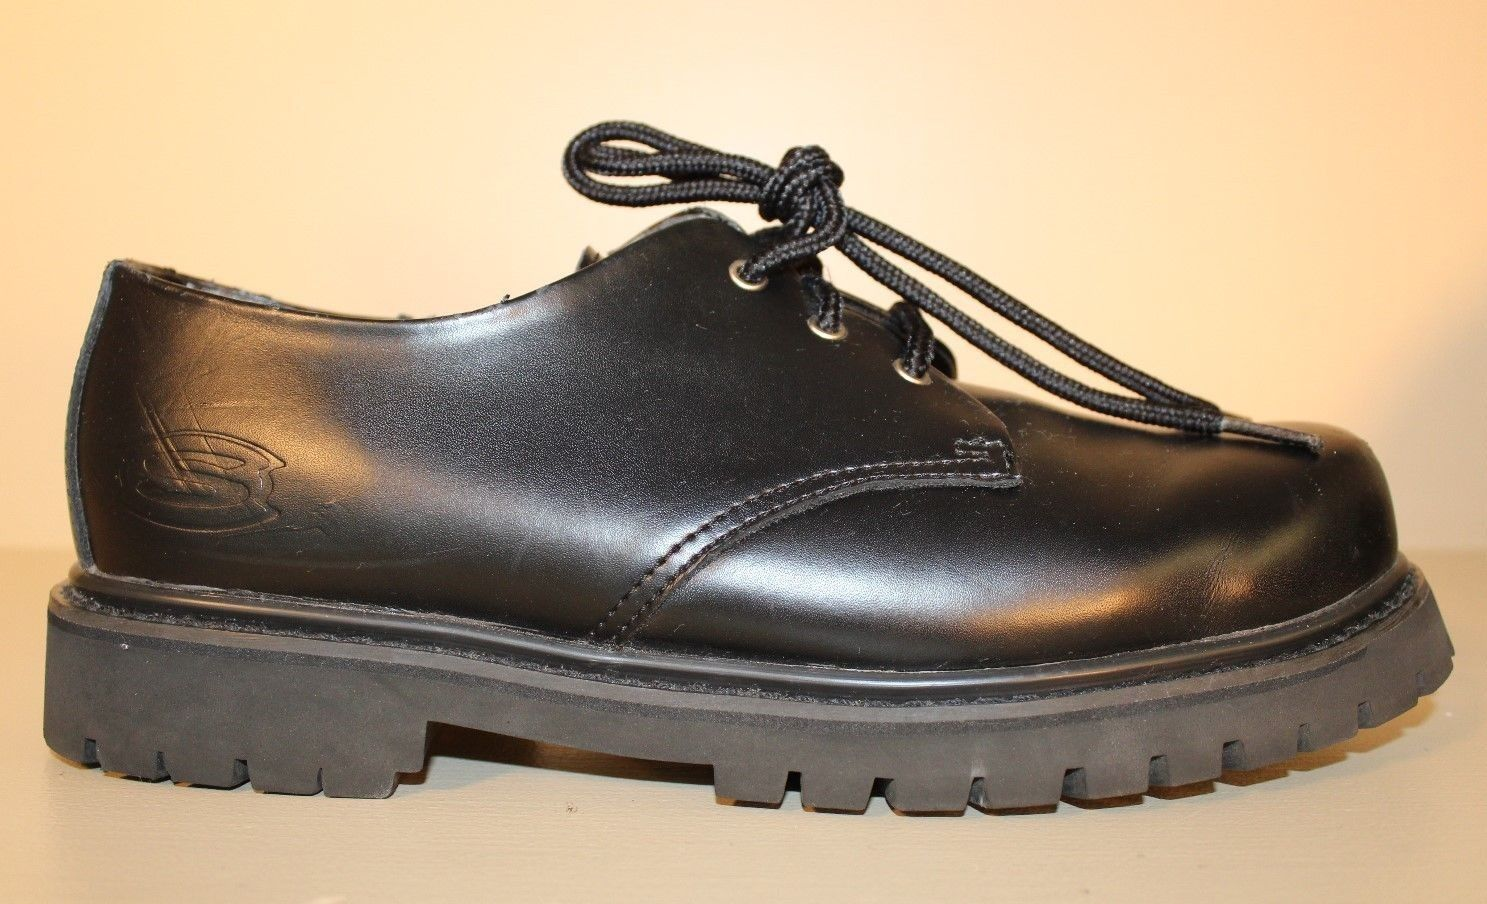 Skechers Mens Oxford shoes Sz 8 M   41 Black Leather Casual Work Lace Up SN6626